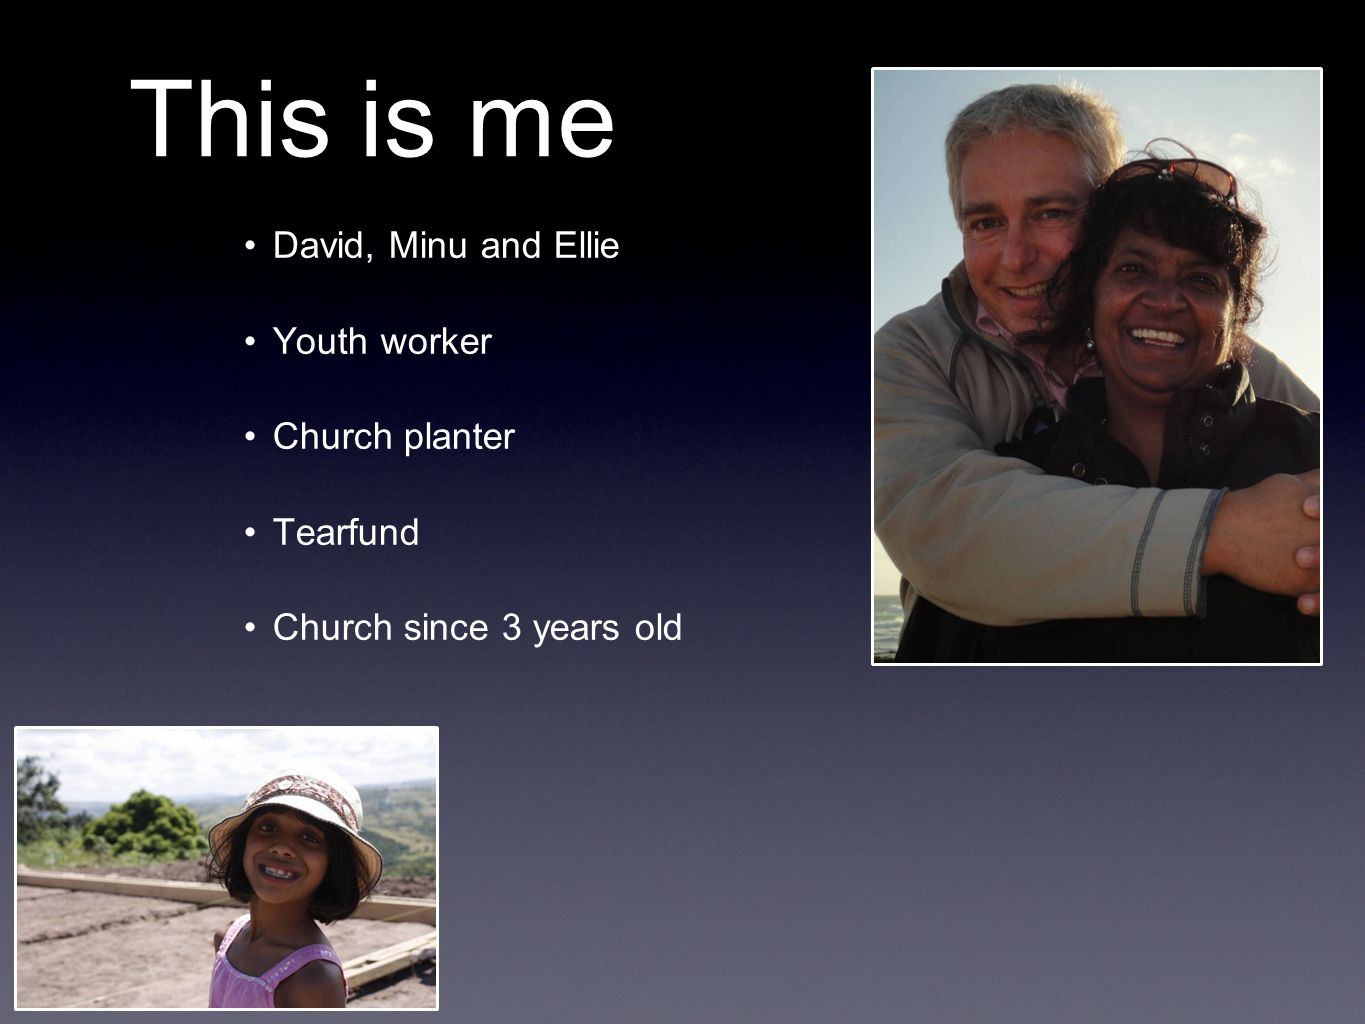 This is me David, Minu and Ellie Youth worker Church planter Tearfund Church since 3 years old